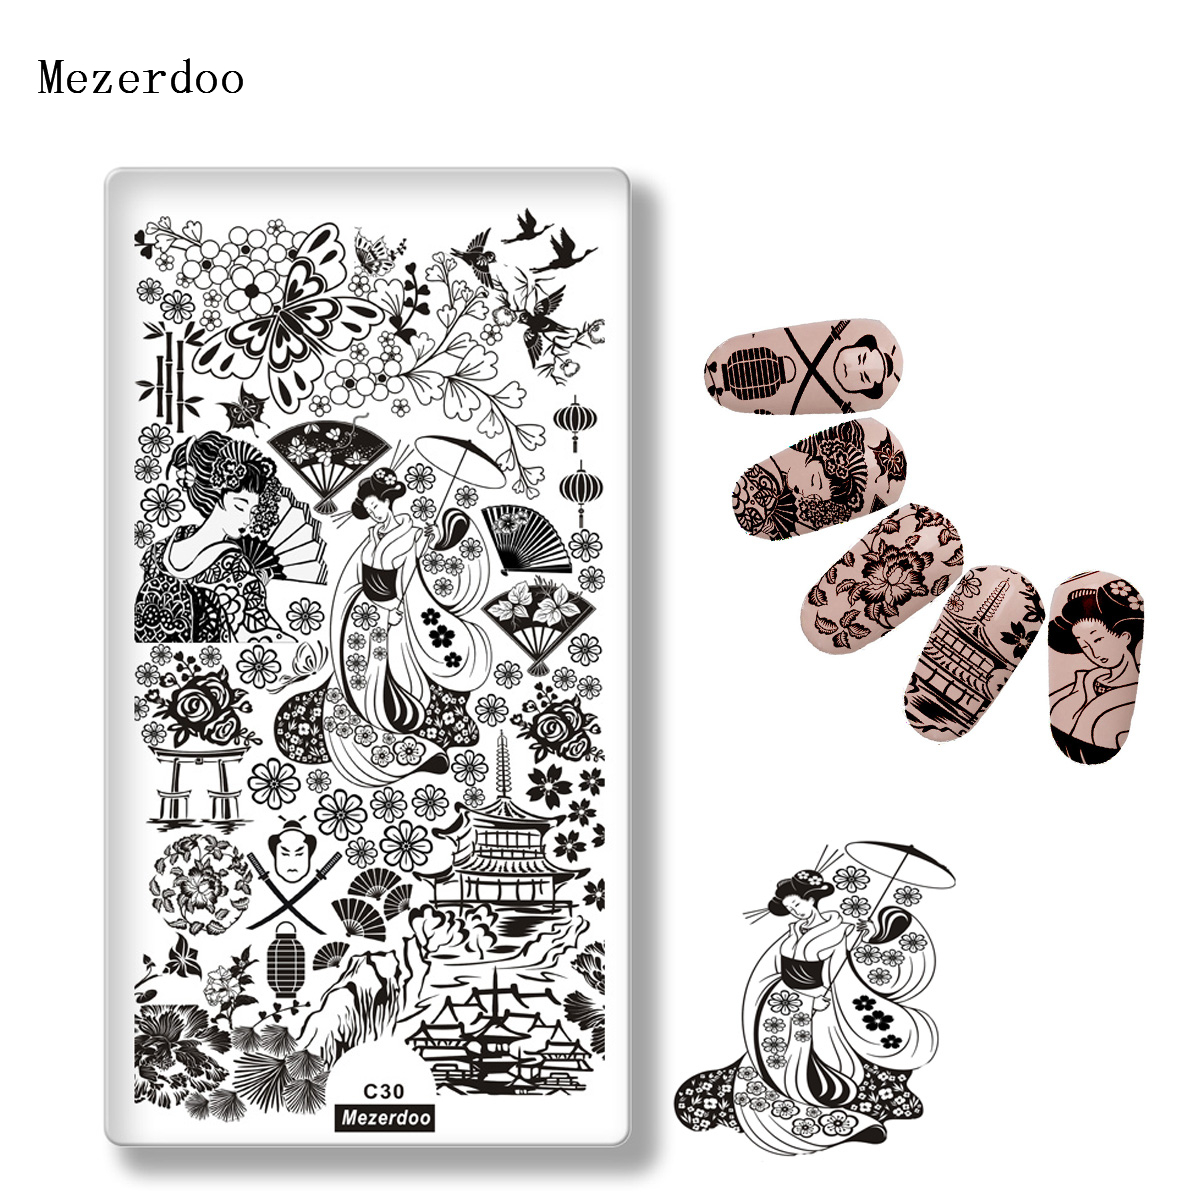 Japanese Series Nail Template Petty Girl Warrior Fashion Style Stamping Plate Cherry Butterfly Pattern Fan Design Stencil C30